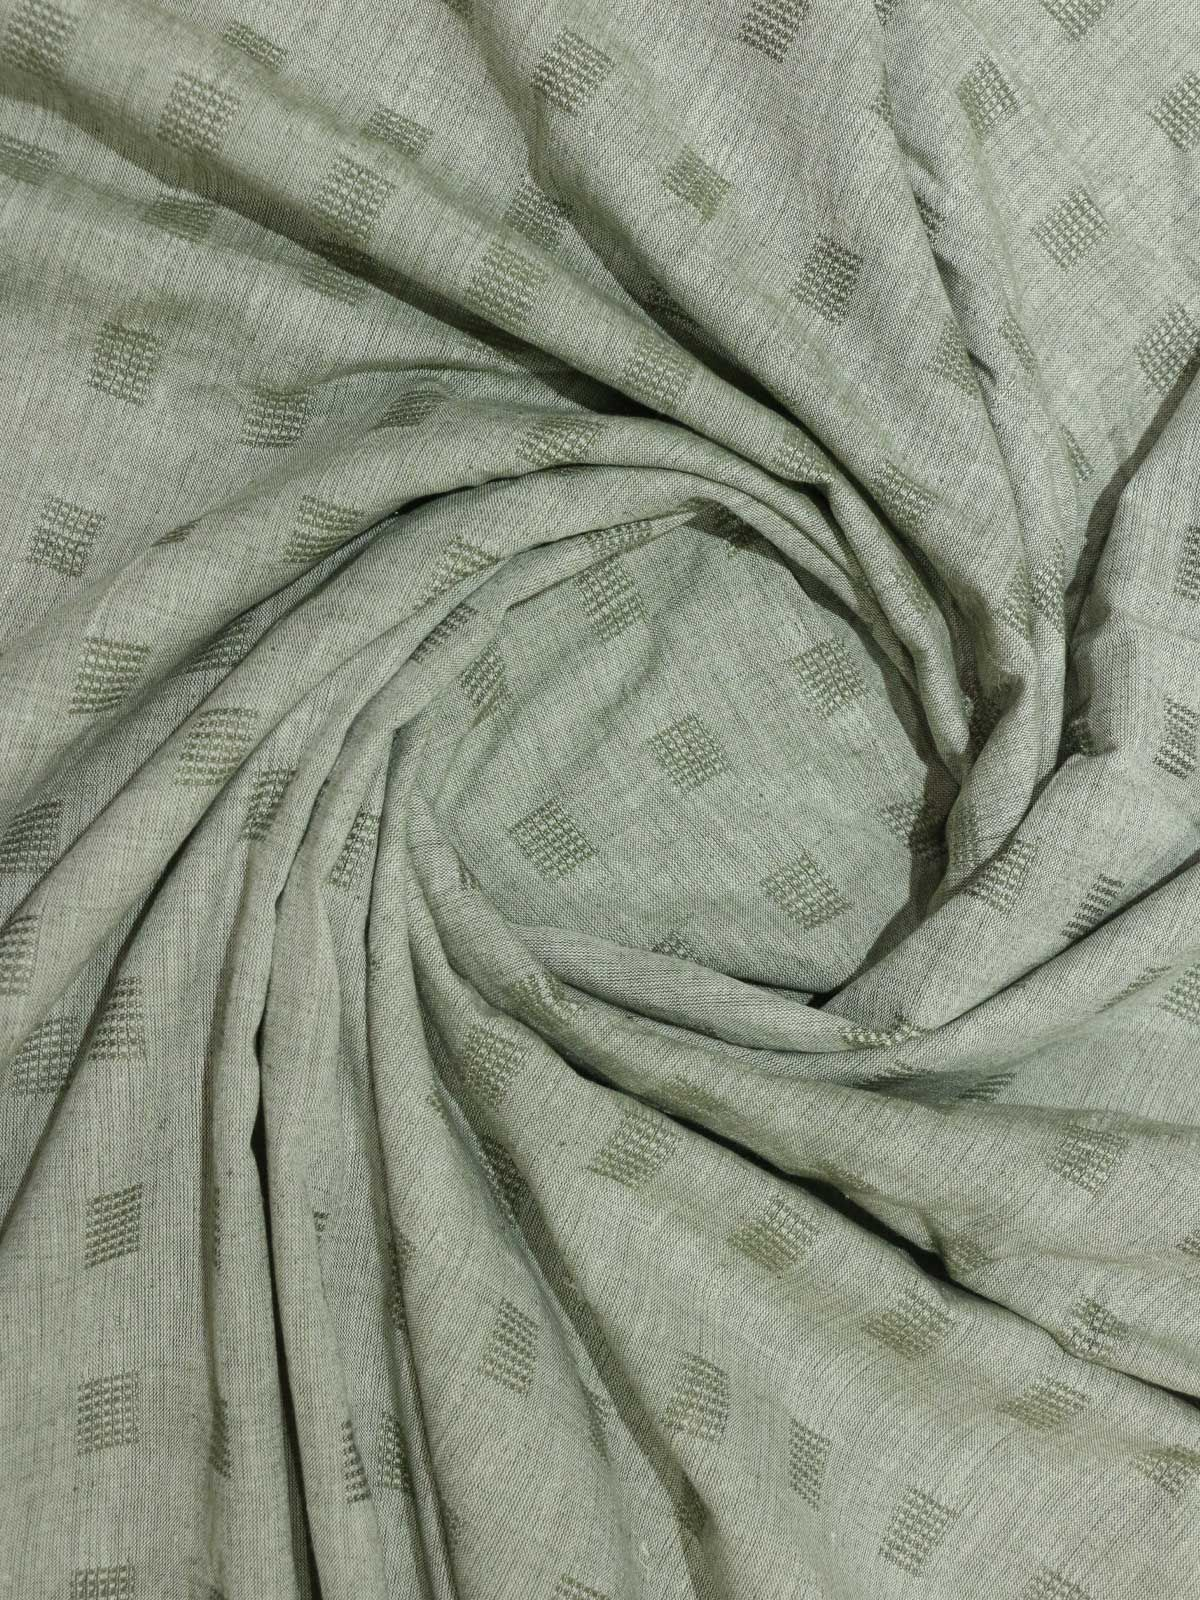 Sea Green color dobby cotton fabric